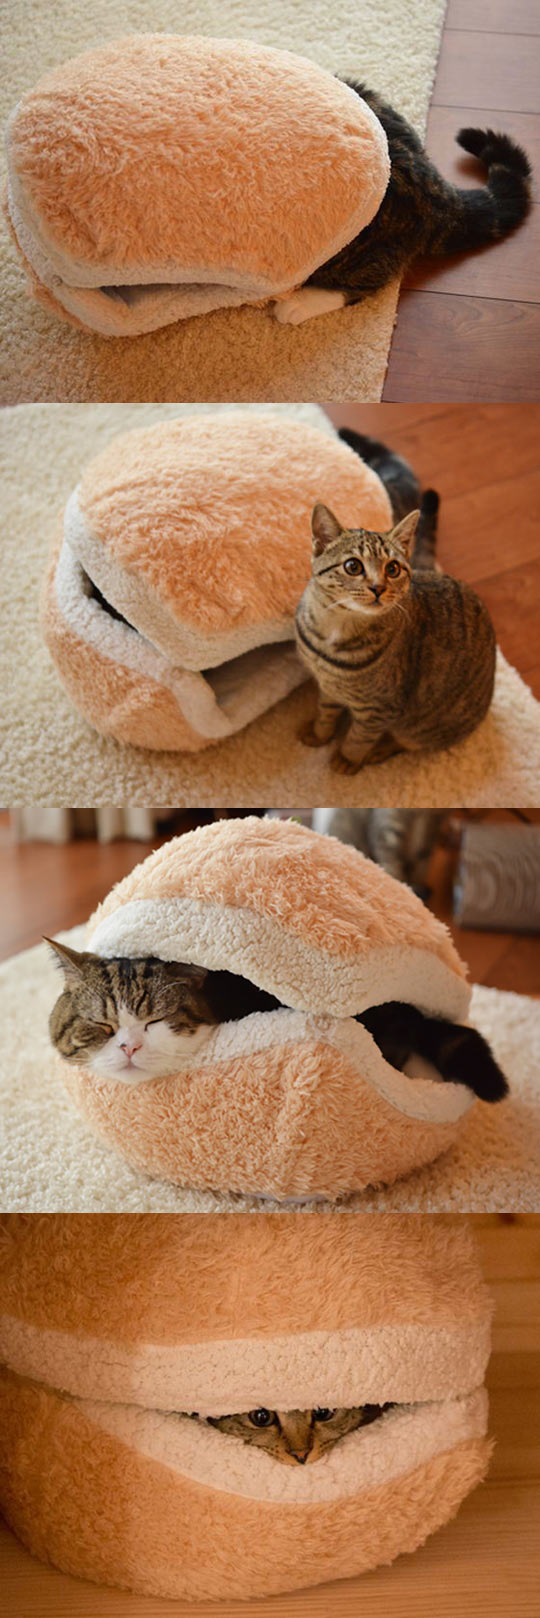 Excuse me, waiter? My burger is purring…